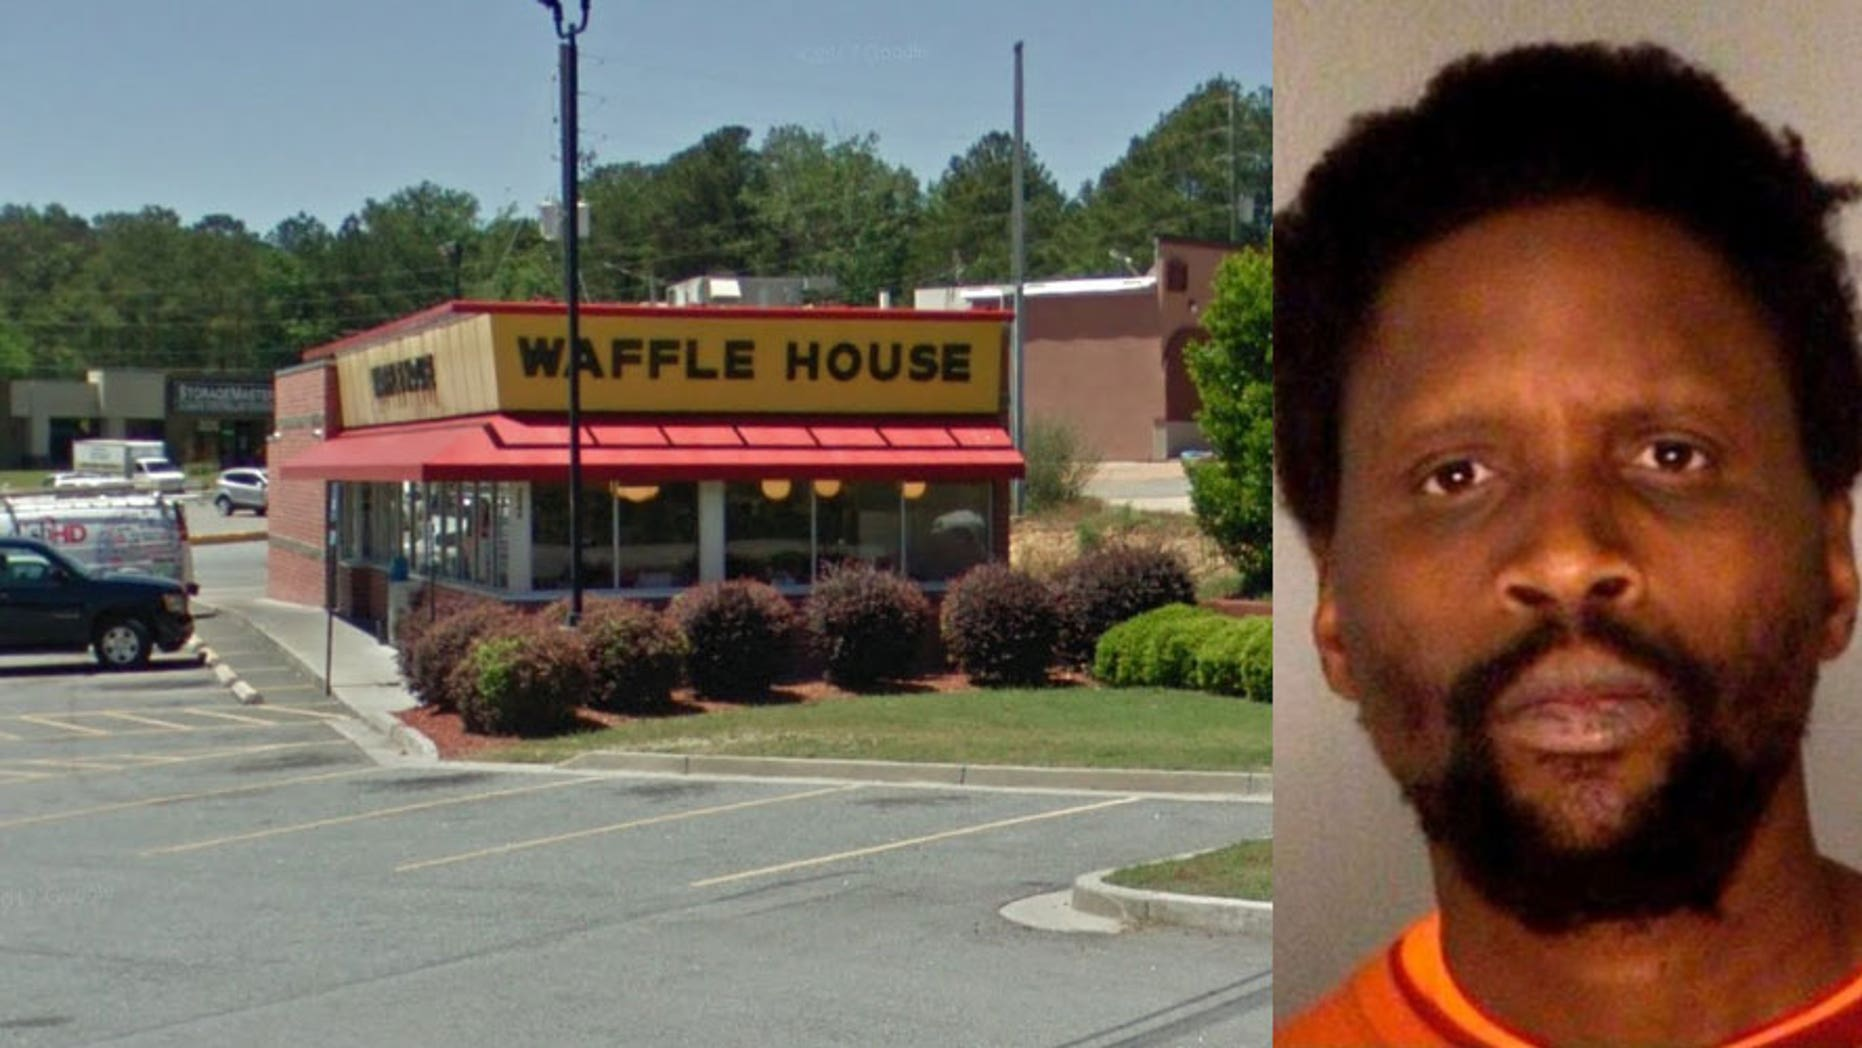 Employees at the Waffle House in Macon, Ga., said Willie Edward Drake became irate after they told him they didn't carry the condiment.